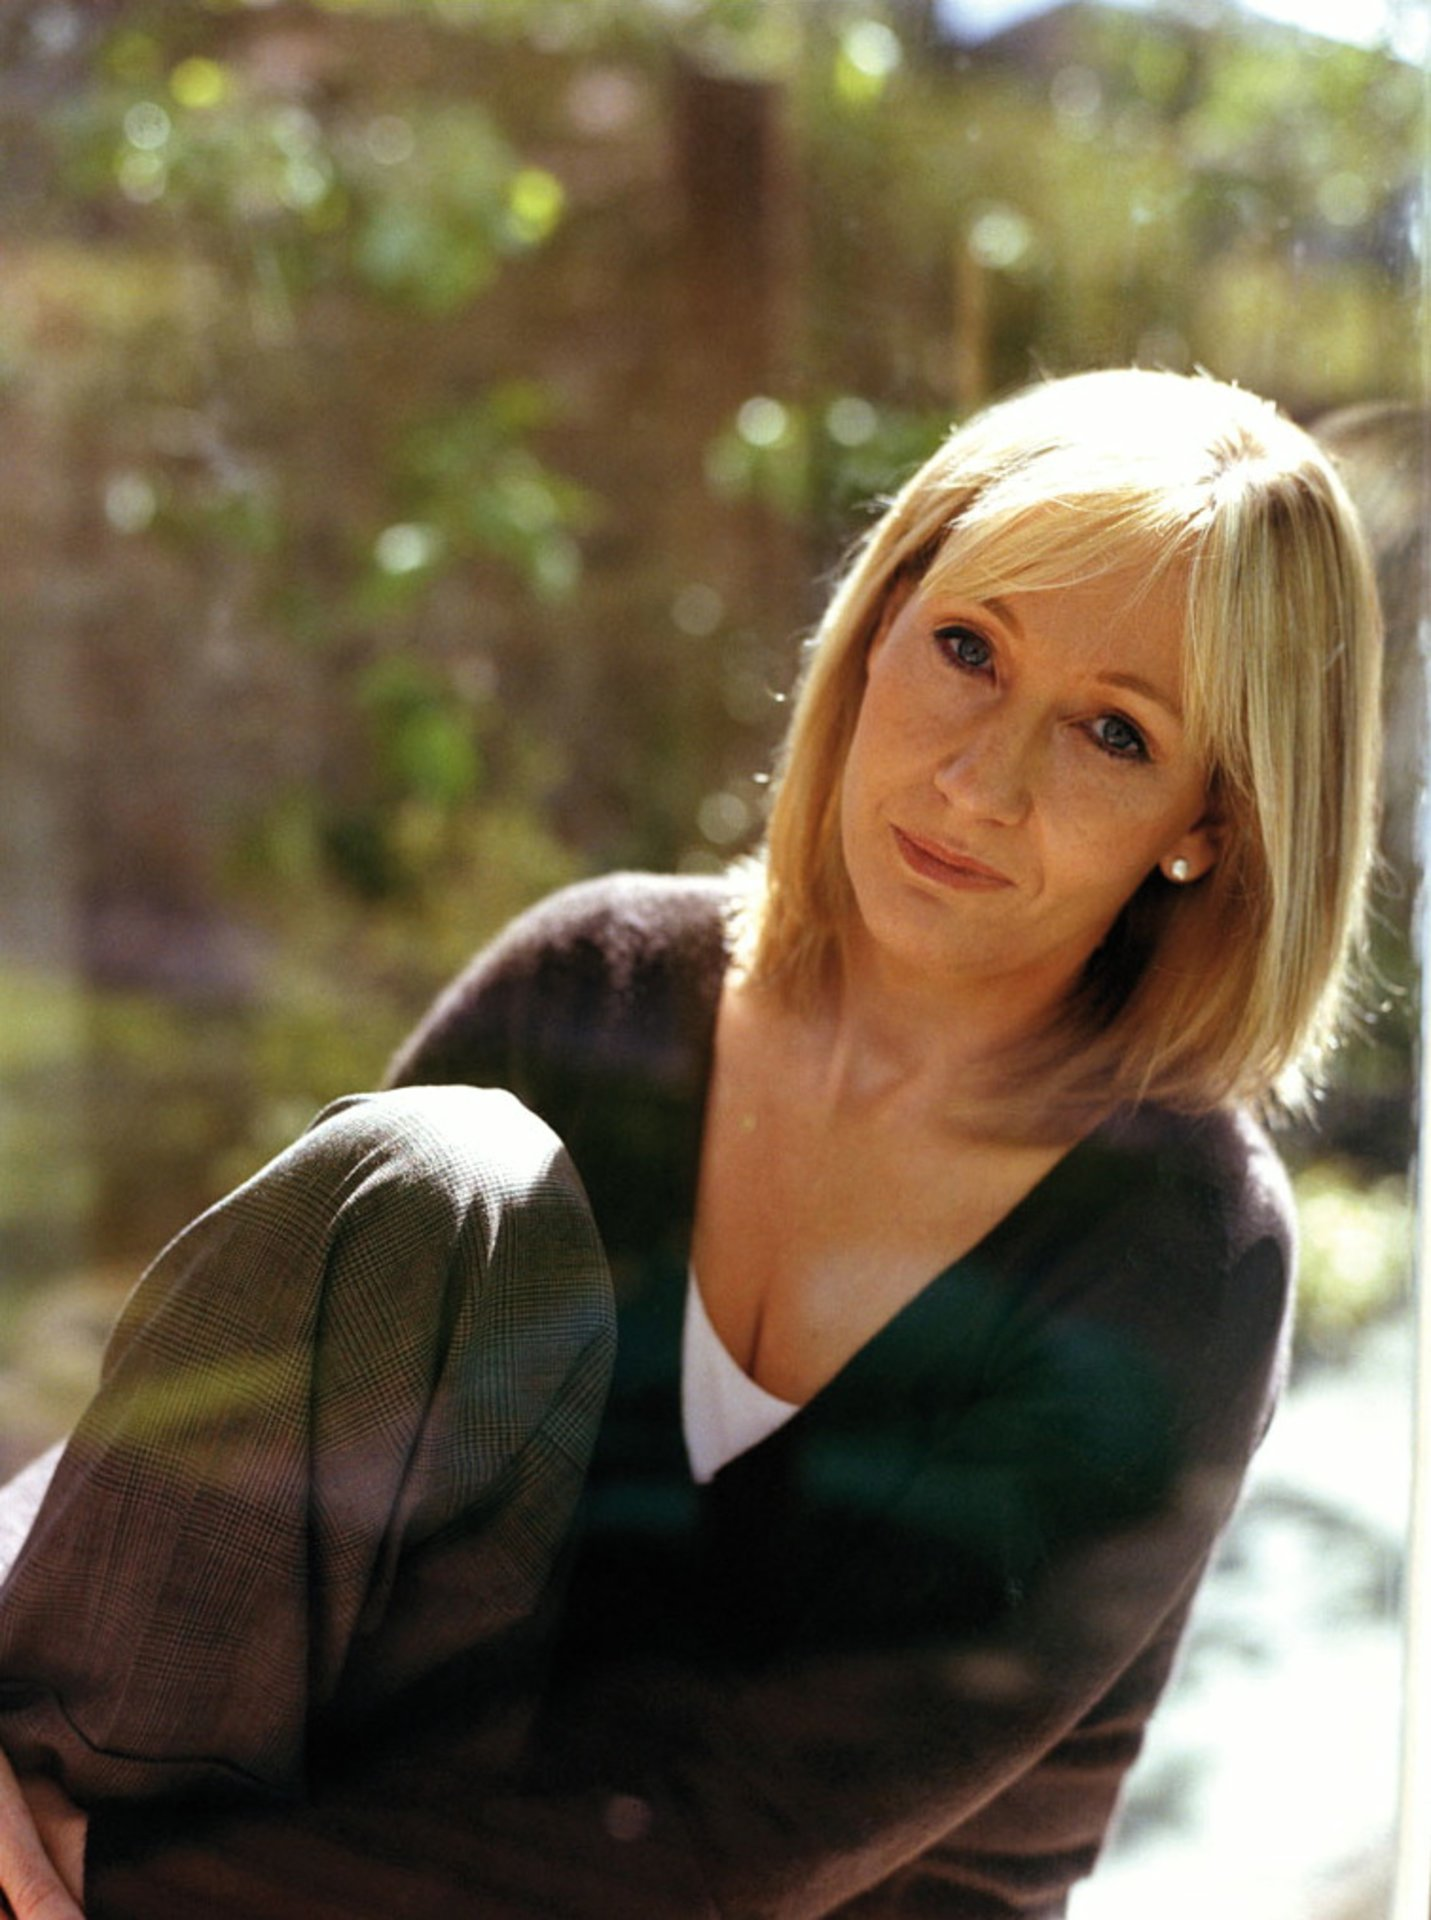 joanne k rowling 1965 portrait. Black Bedroom Furniture Sets. Home Design Ideas